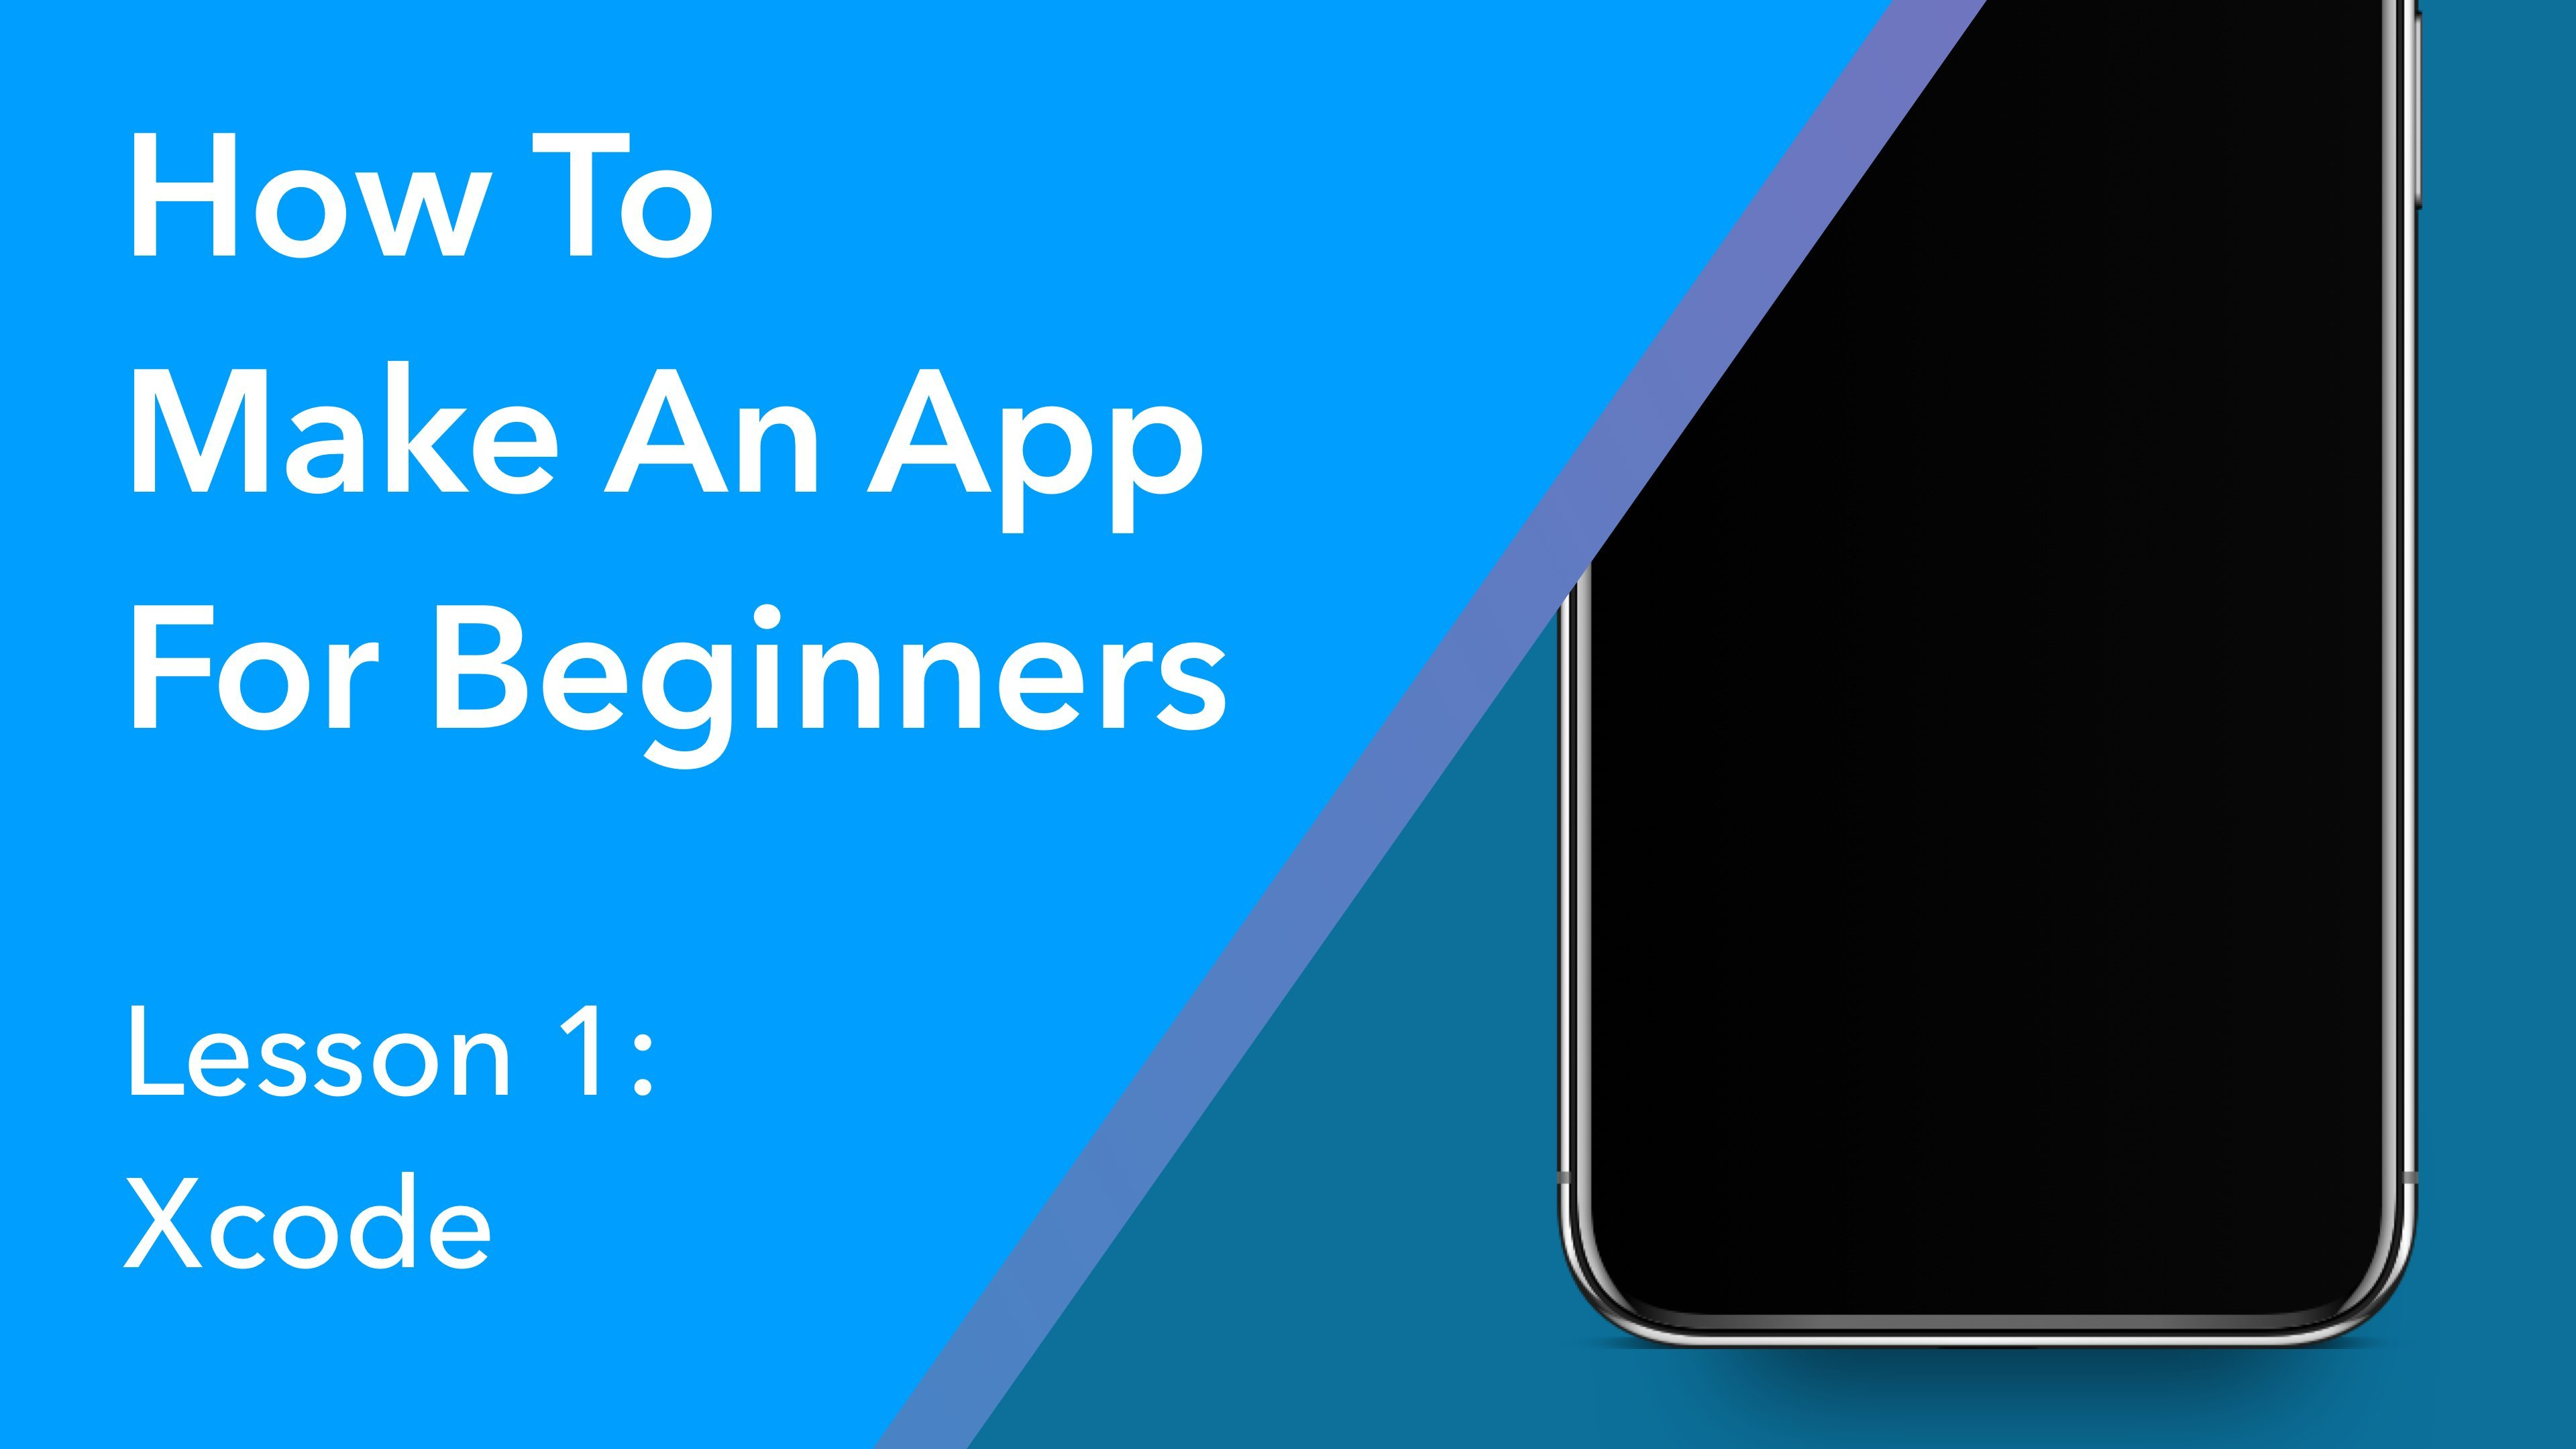 How to Make an App for Beginners 2018